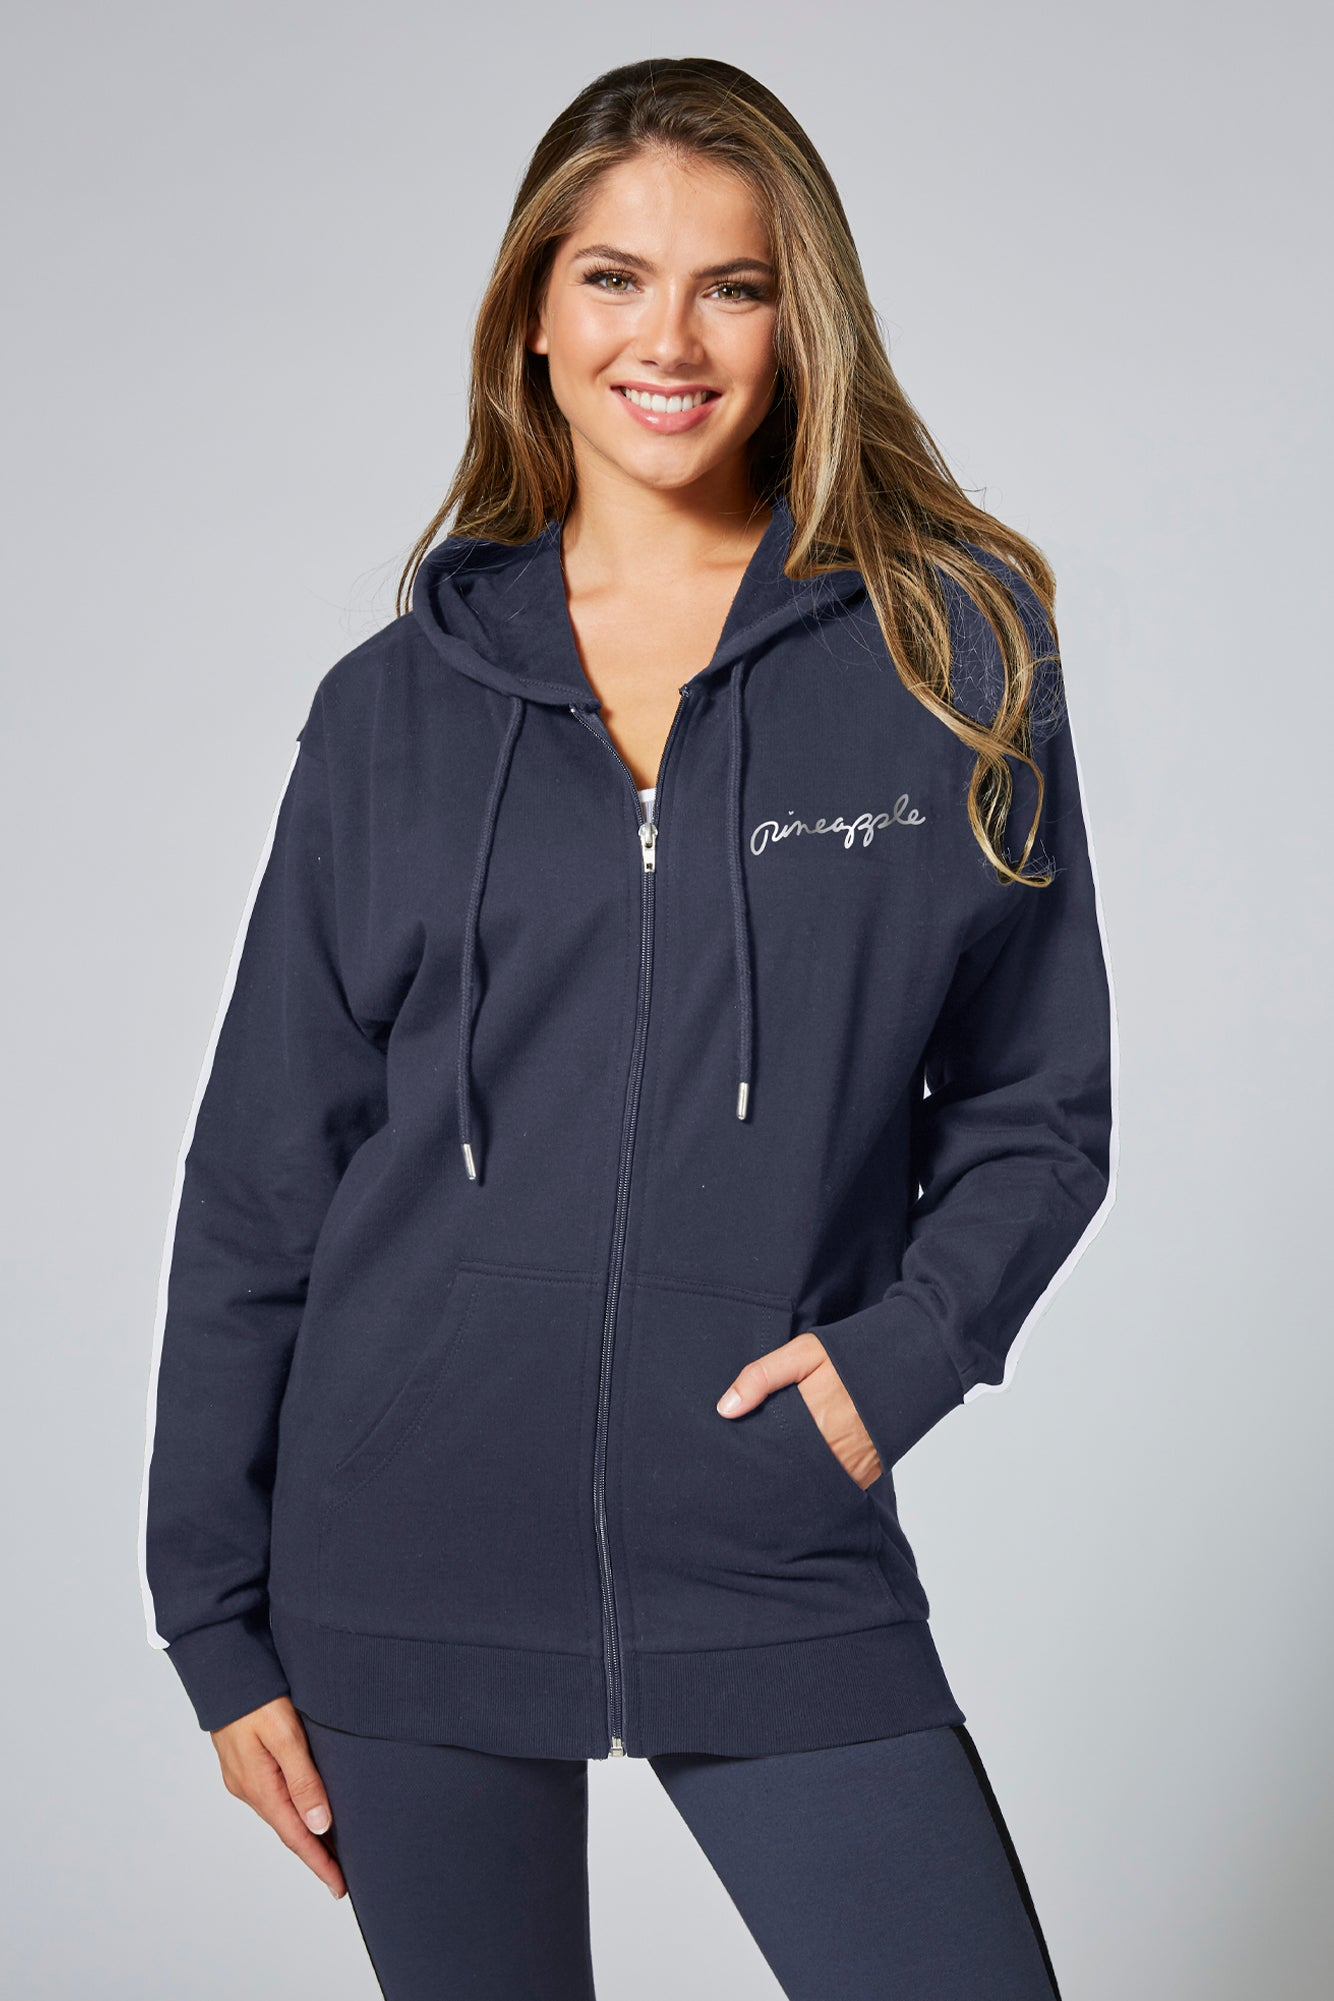 Pineapple Women's Charcoal Stripe Zip Hoodie JH00170A6